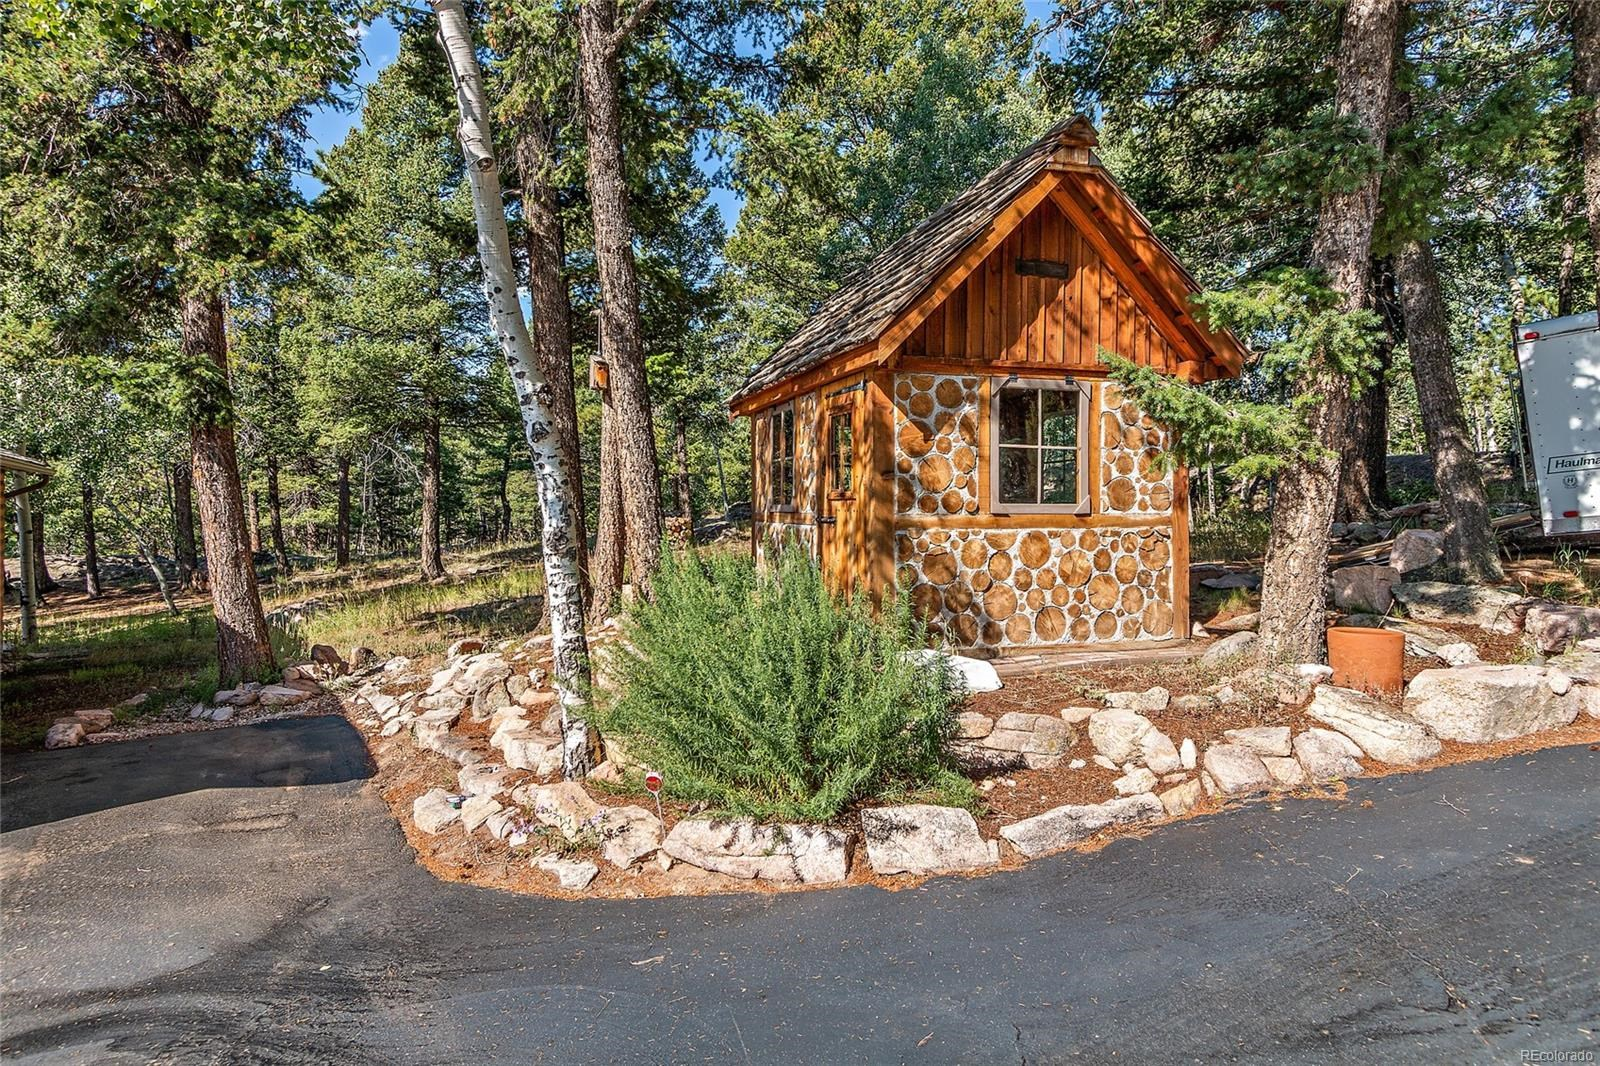 MLS# 1581293 - 13472 Riley Peak Road, Conifer, CO 80433